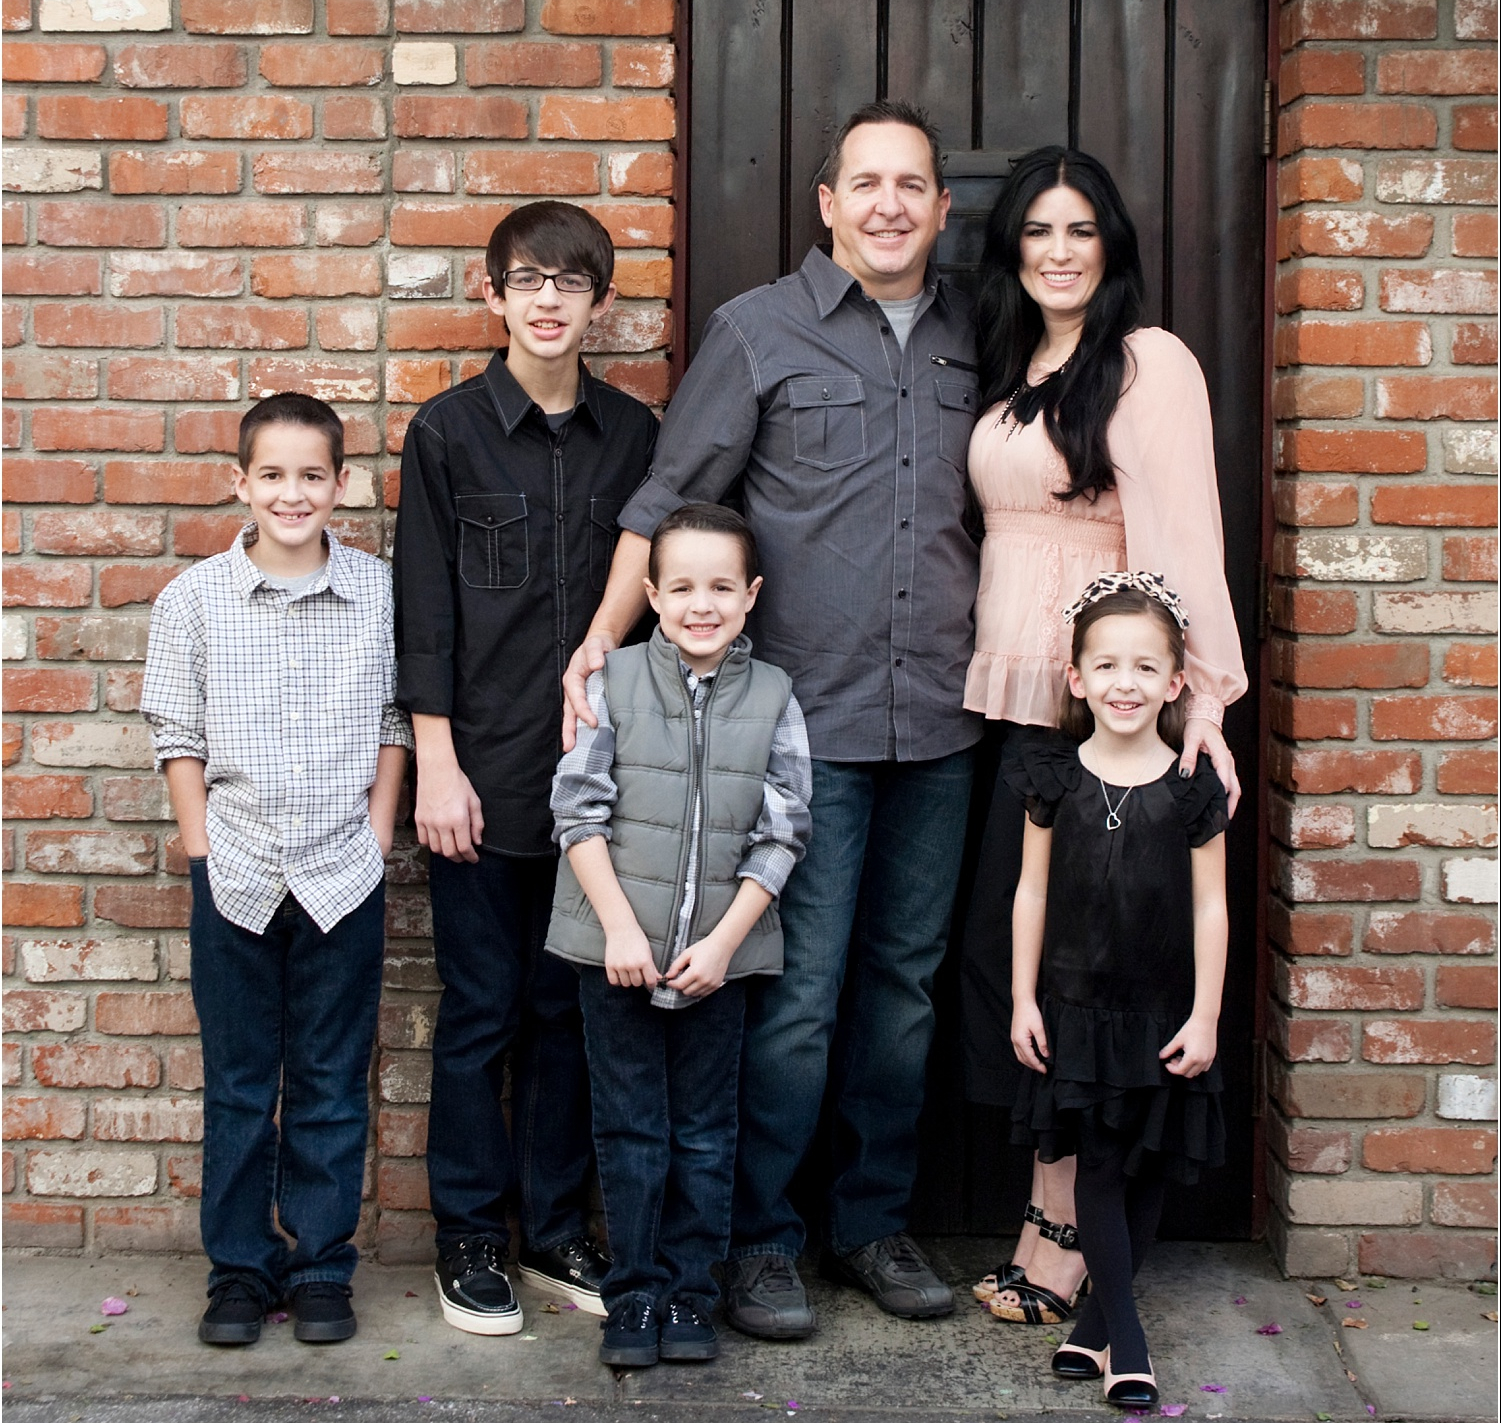 Tips for Posing Large Families and Groups - family with 4 kids